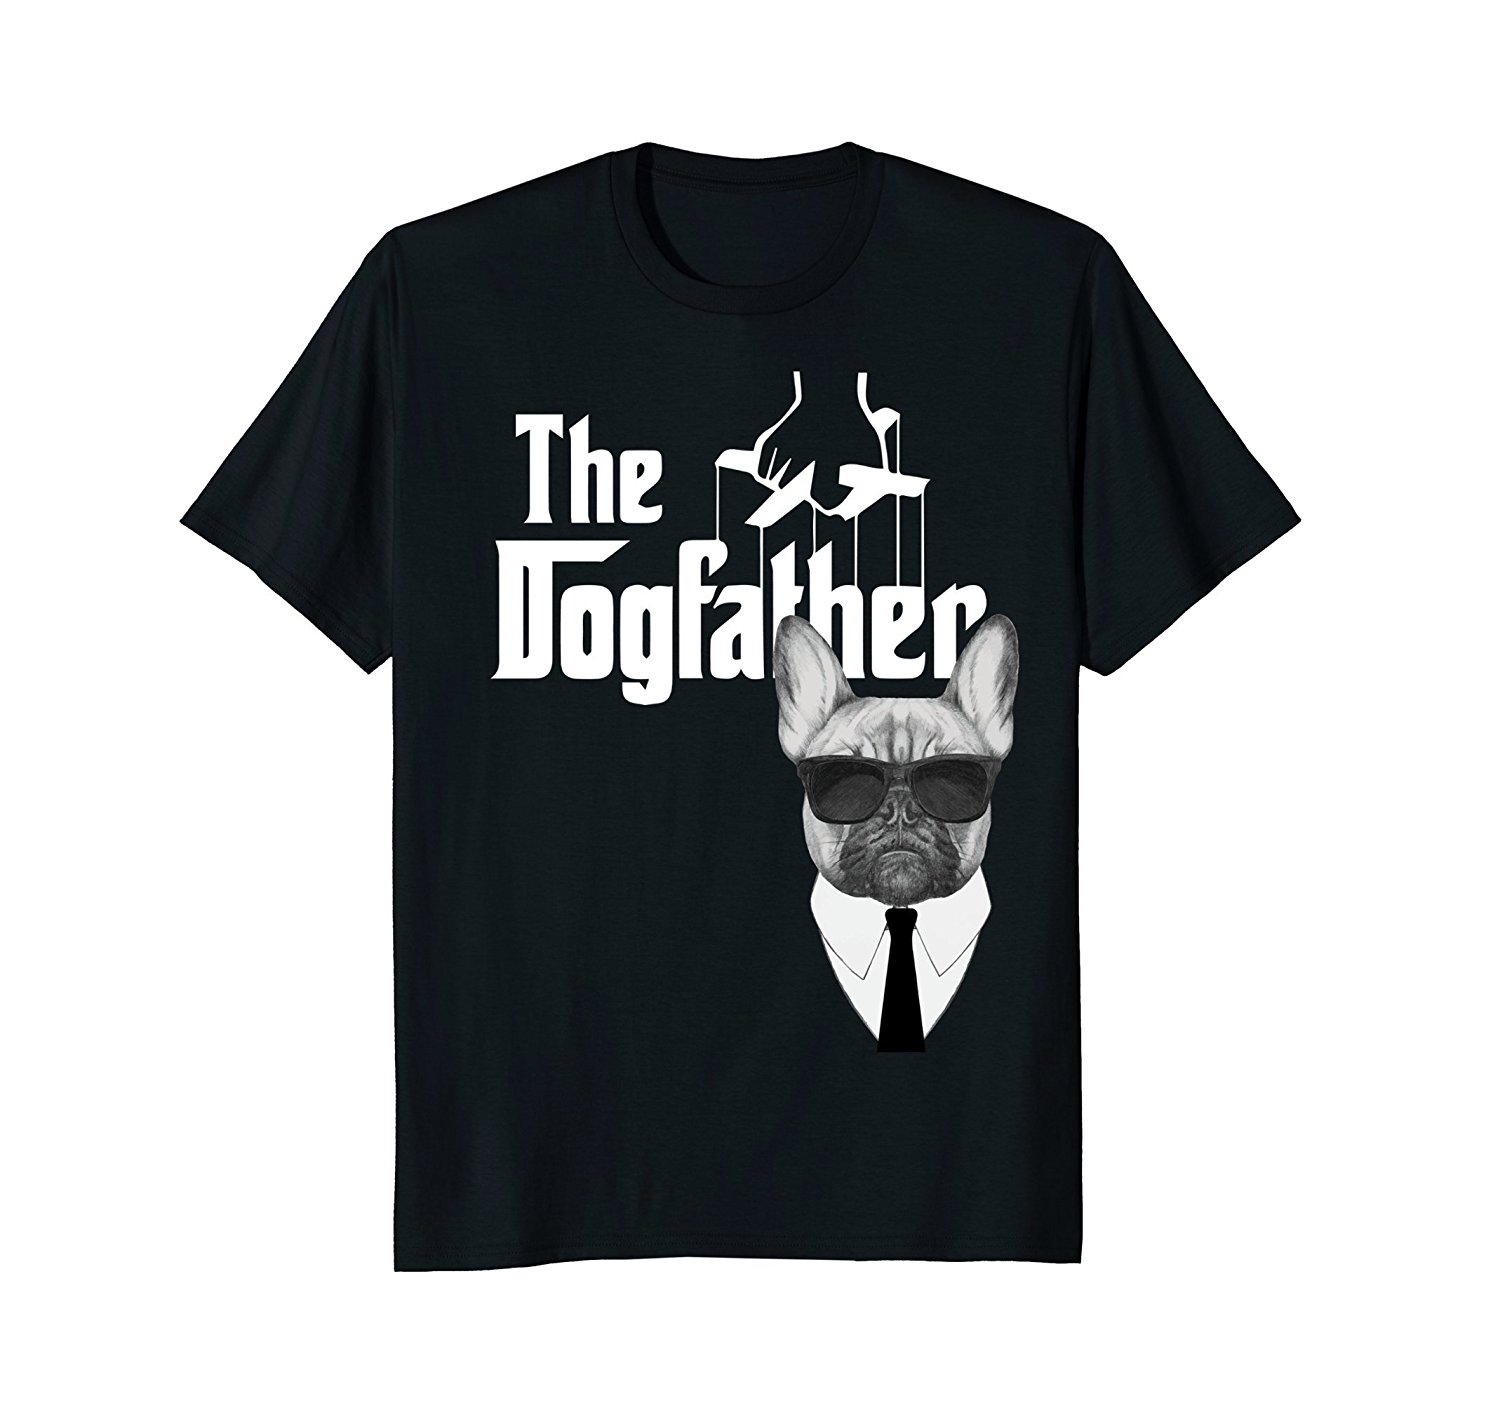 2018 New Summer High Quality Tee Shirt The Dogfather French Bulldog T-Shirt Frenchie Dog Tee Cool T-shirt